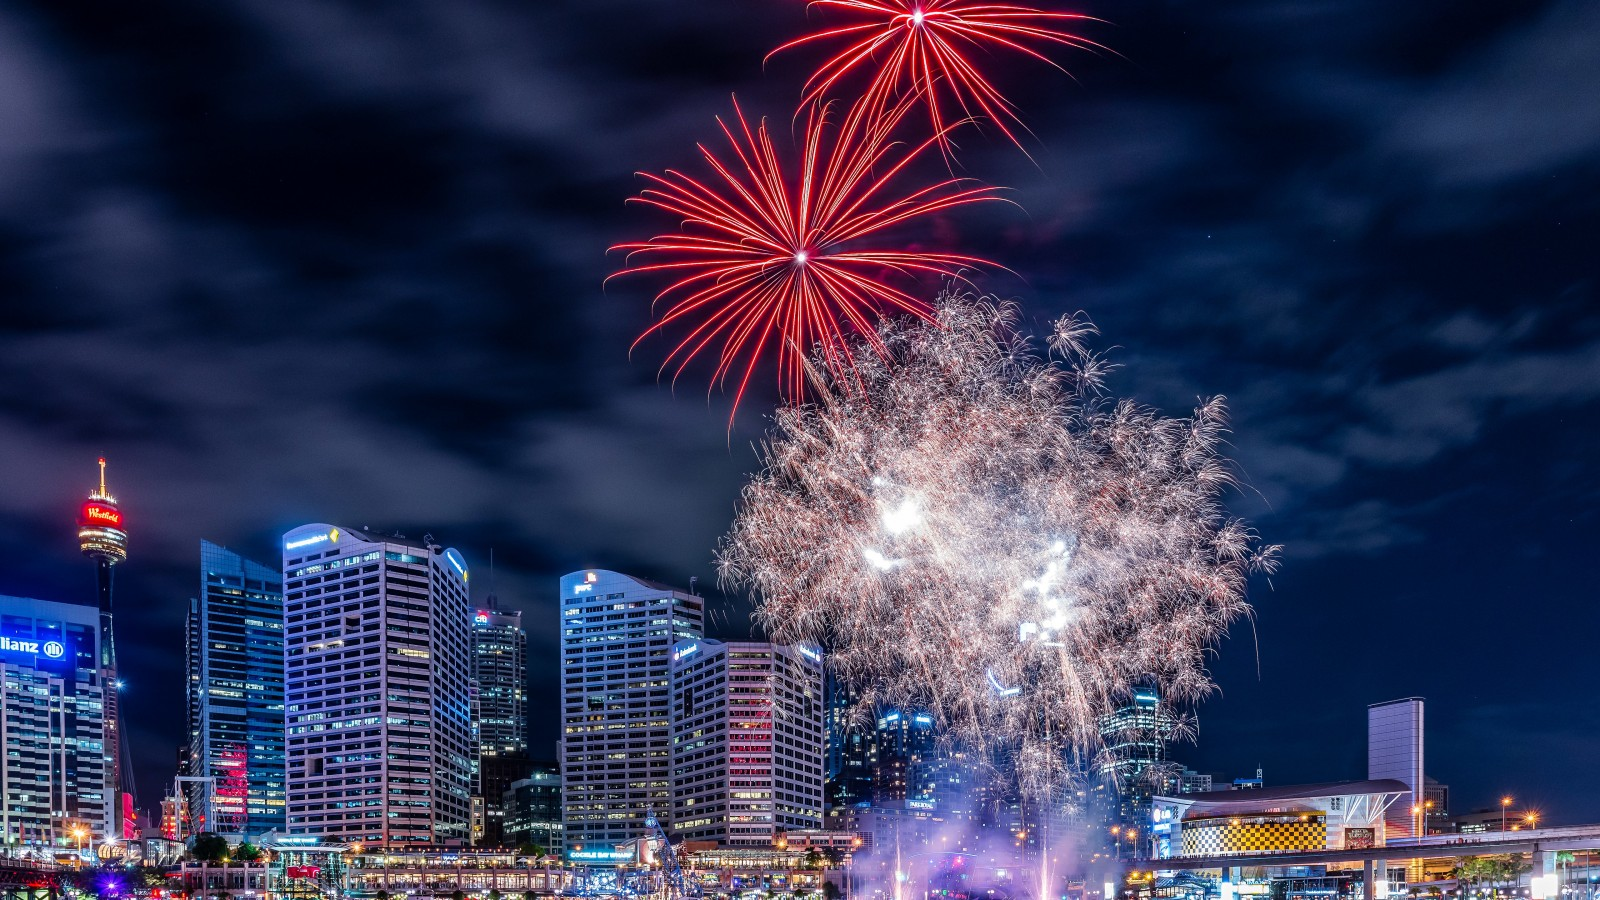 Fireworks In Darling Harbour Wallpaper for Desktop 1600x900